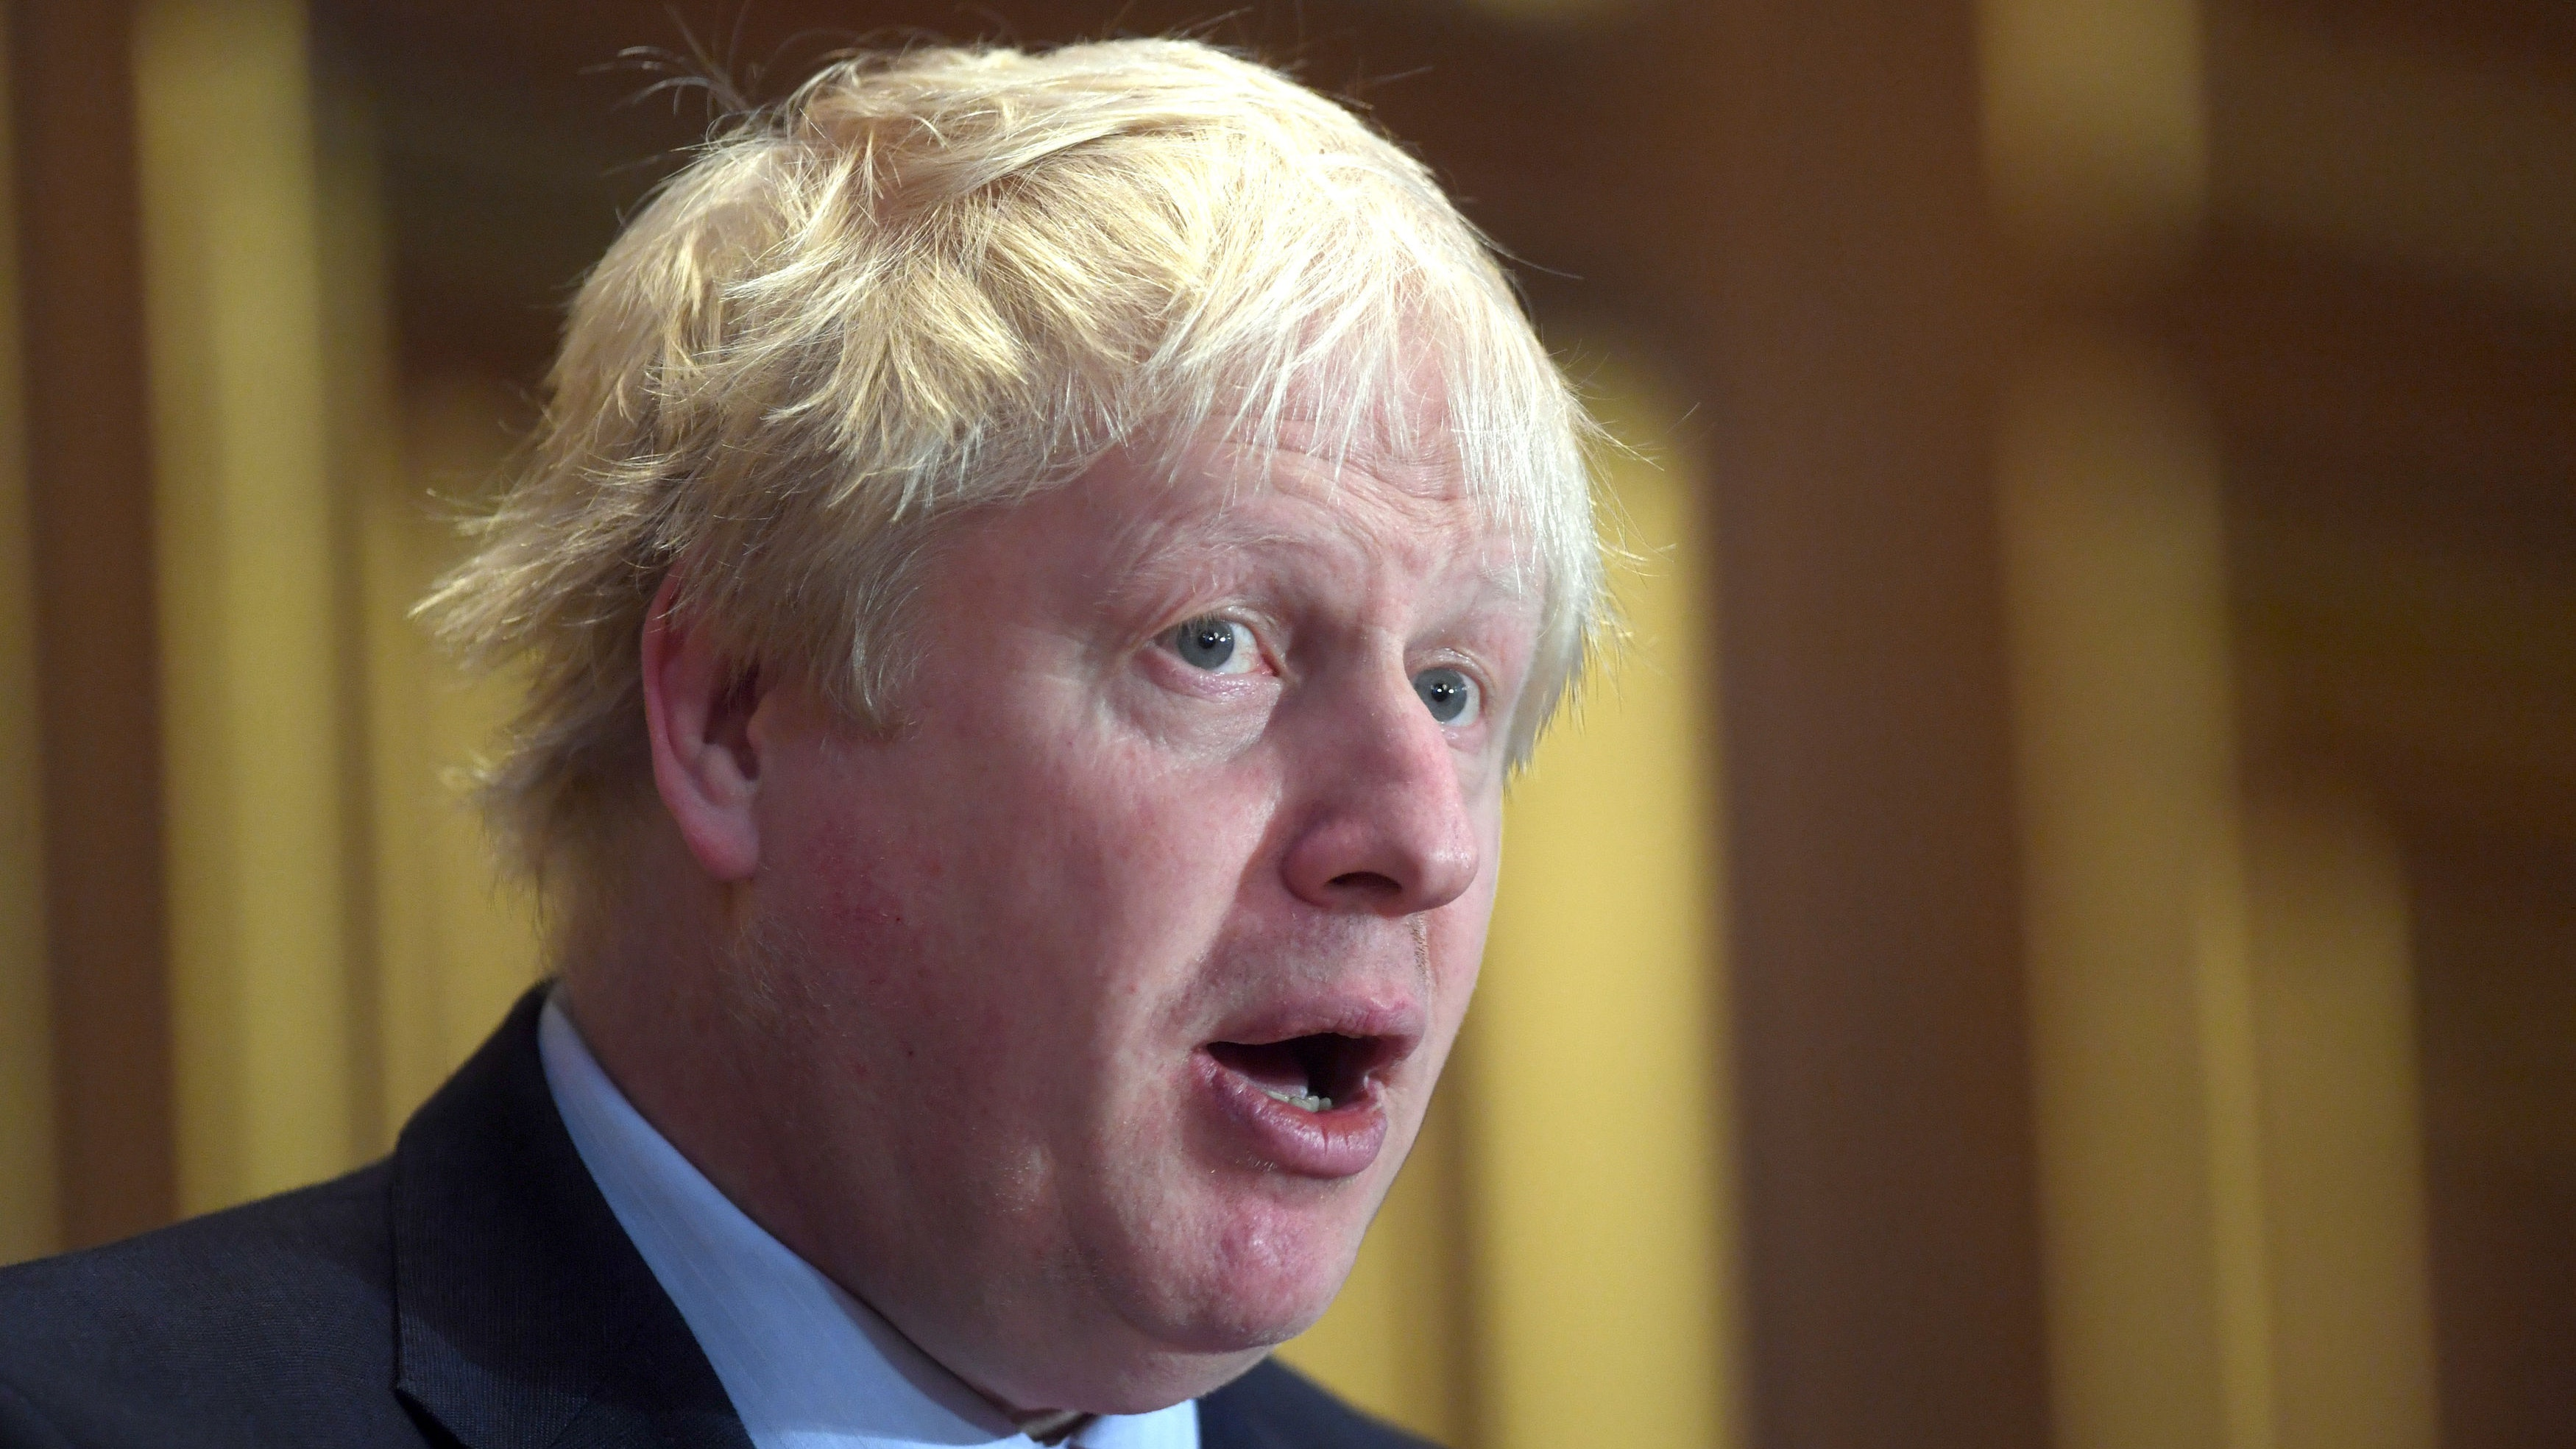 Johnson urges Aung San Suu Kyi to help Rohingya refugees